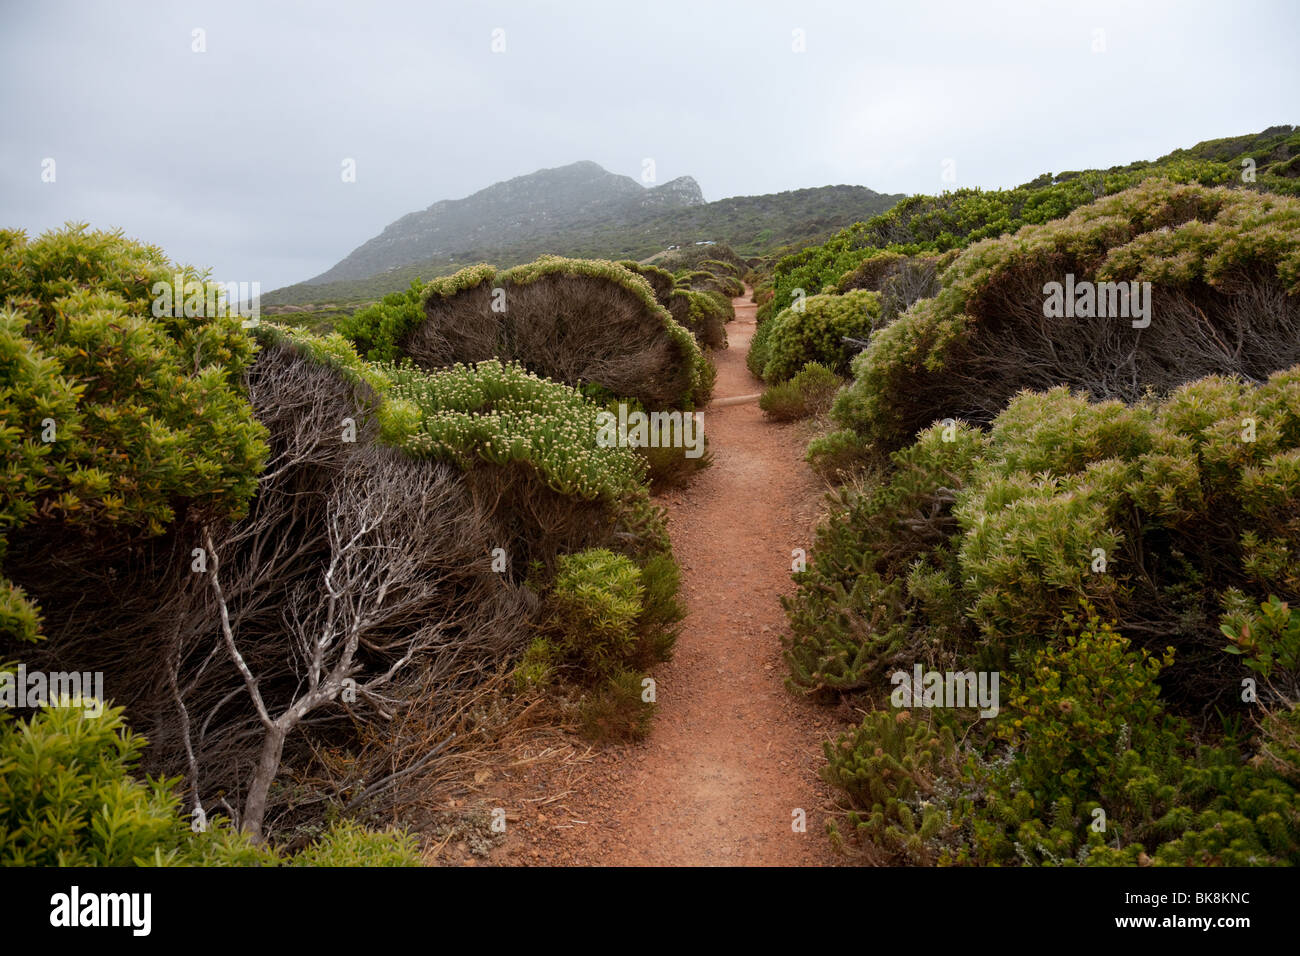 Pathway with bushland at Cape of Good Hope, South Africa - Stock Image